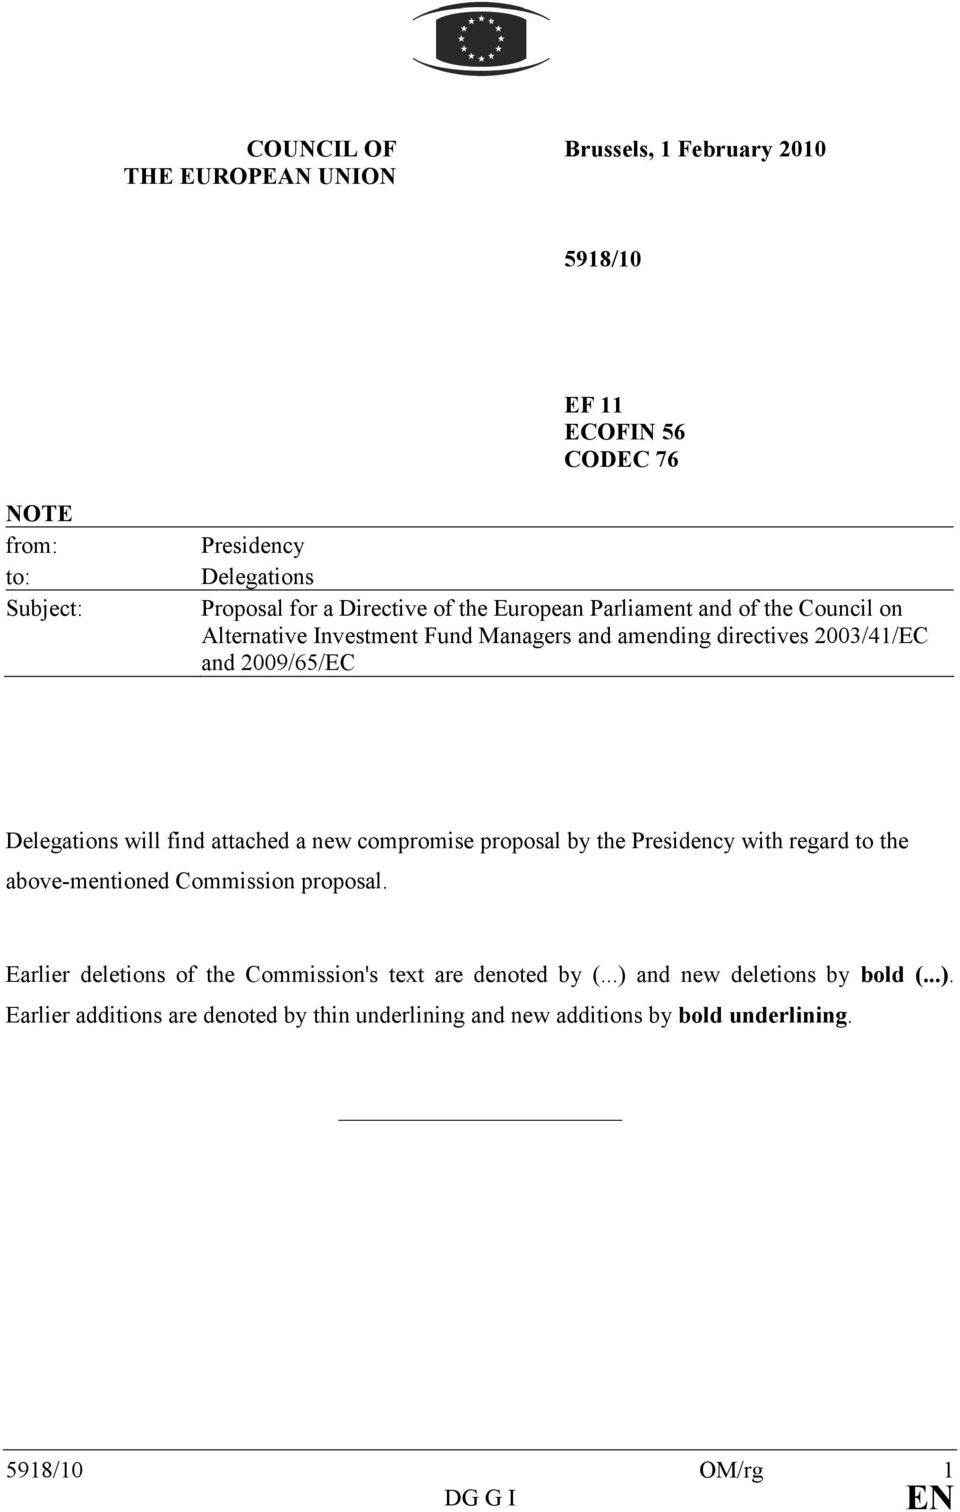 will find attached a new compromise proposal by the Presidency with regard to the above-mentioned Commission proposal.